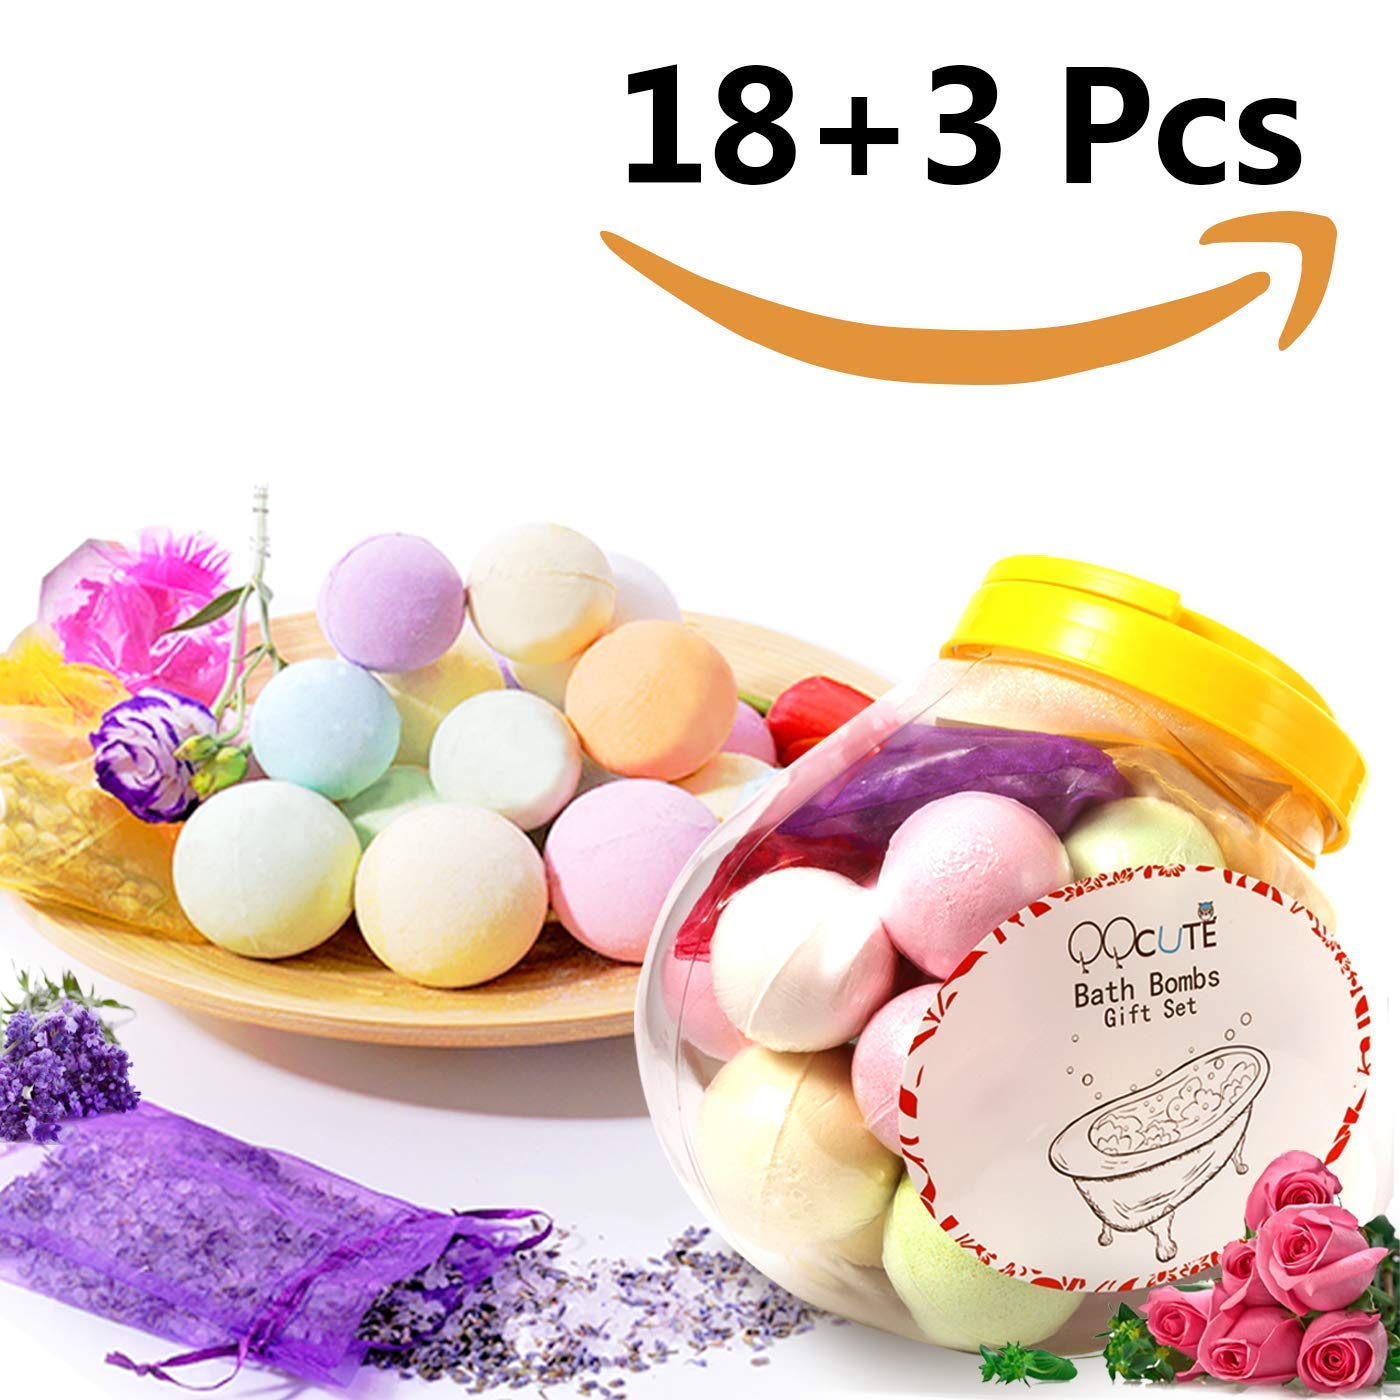 Qqcute Bath Bombs Gift Set 18 Family Spa Vegan Lush Fizzies With